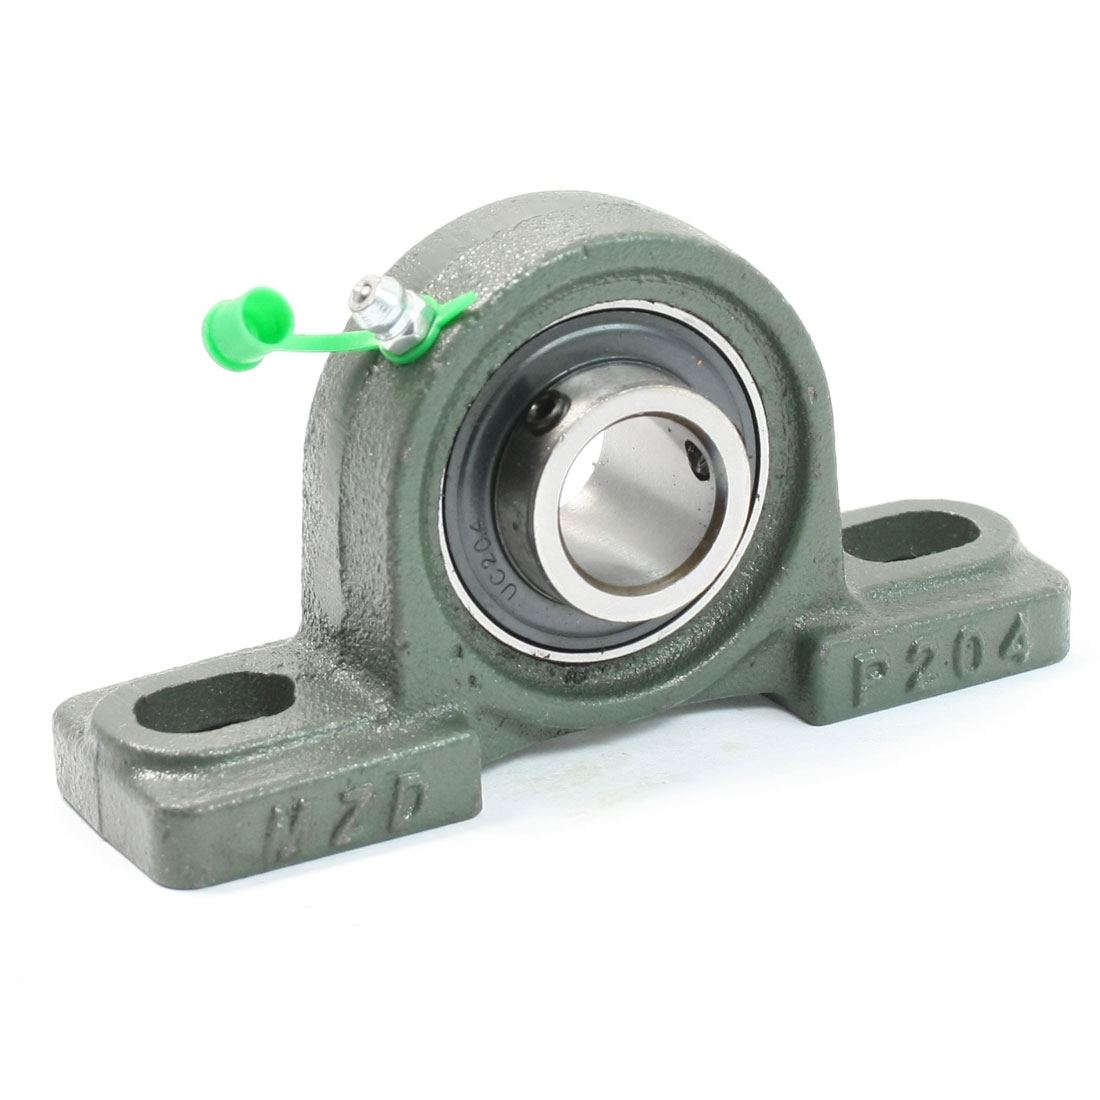 UCP204 Cast Iron Housing 20mm Bore Mounted Pillow Block Bearing